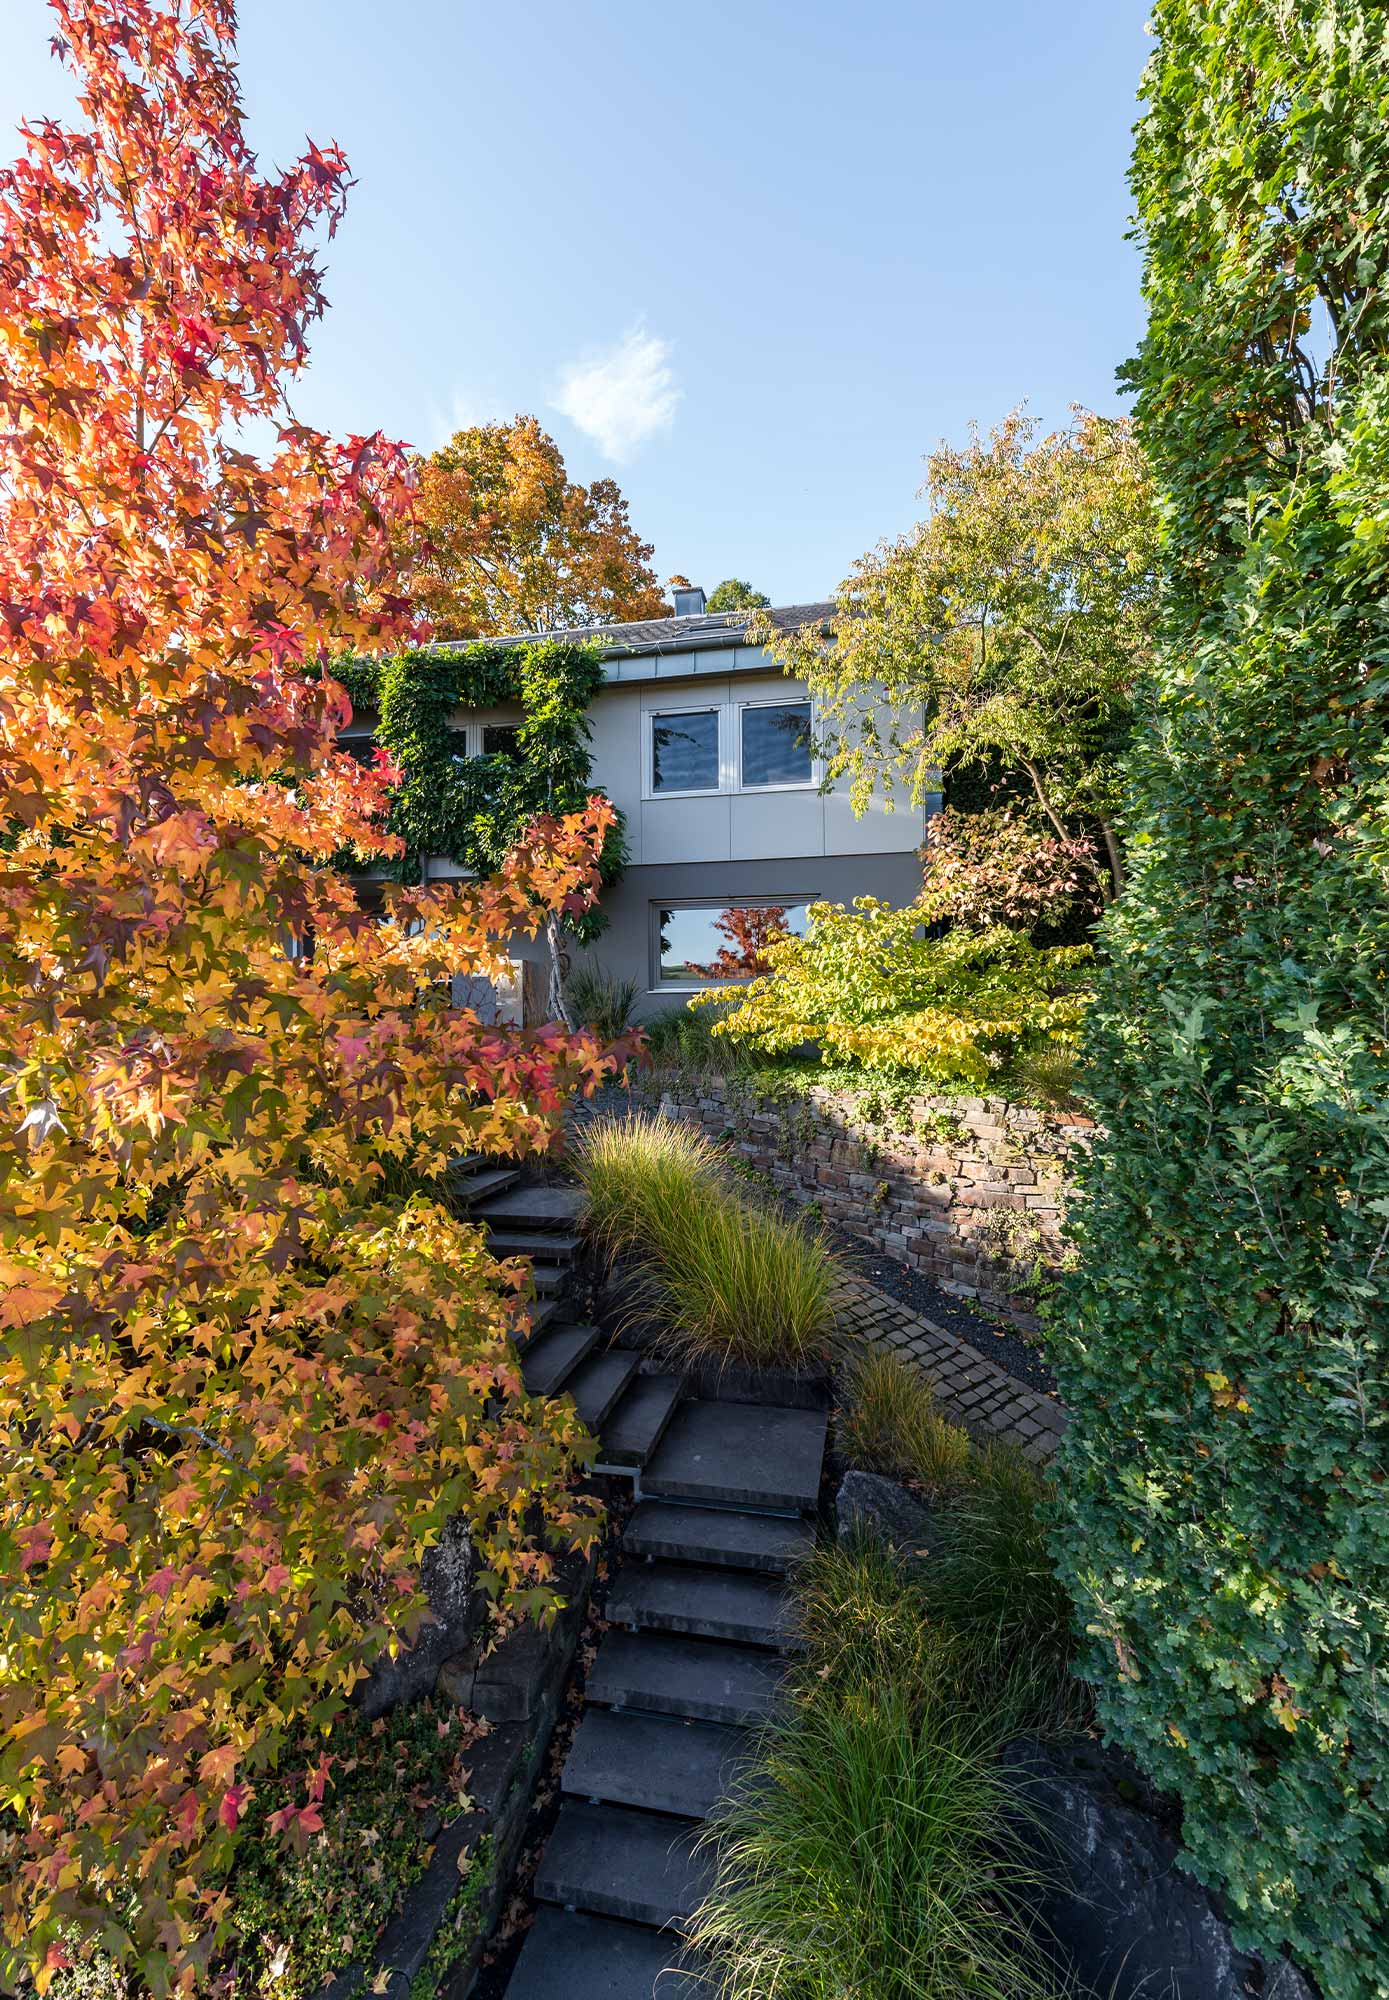 Stairs lead through the colourful front garden up to the house